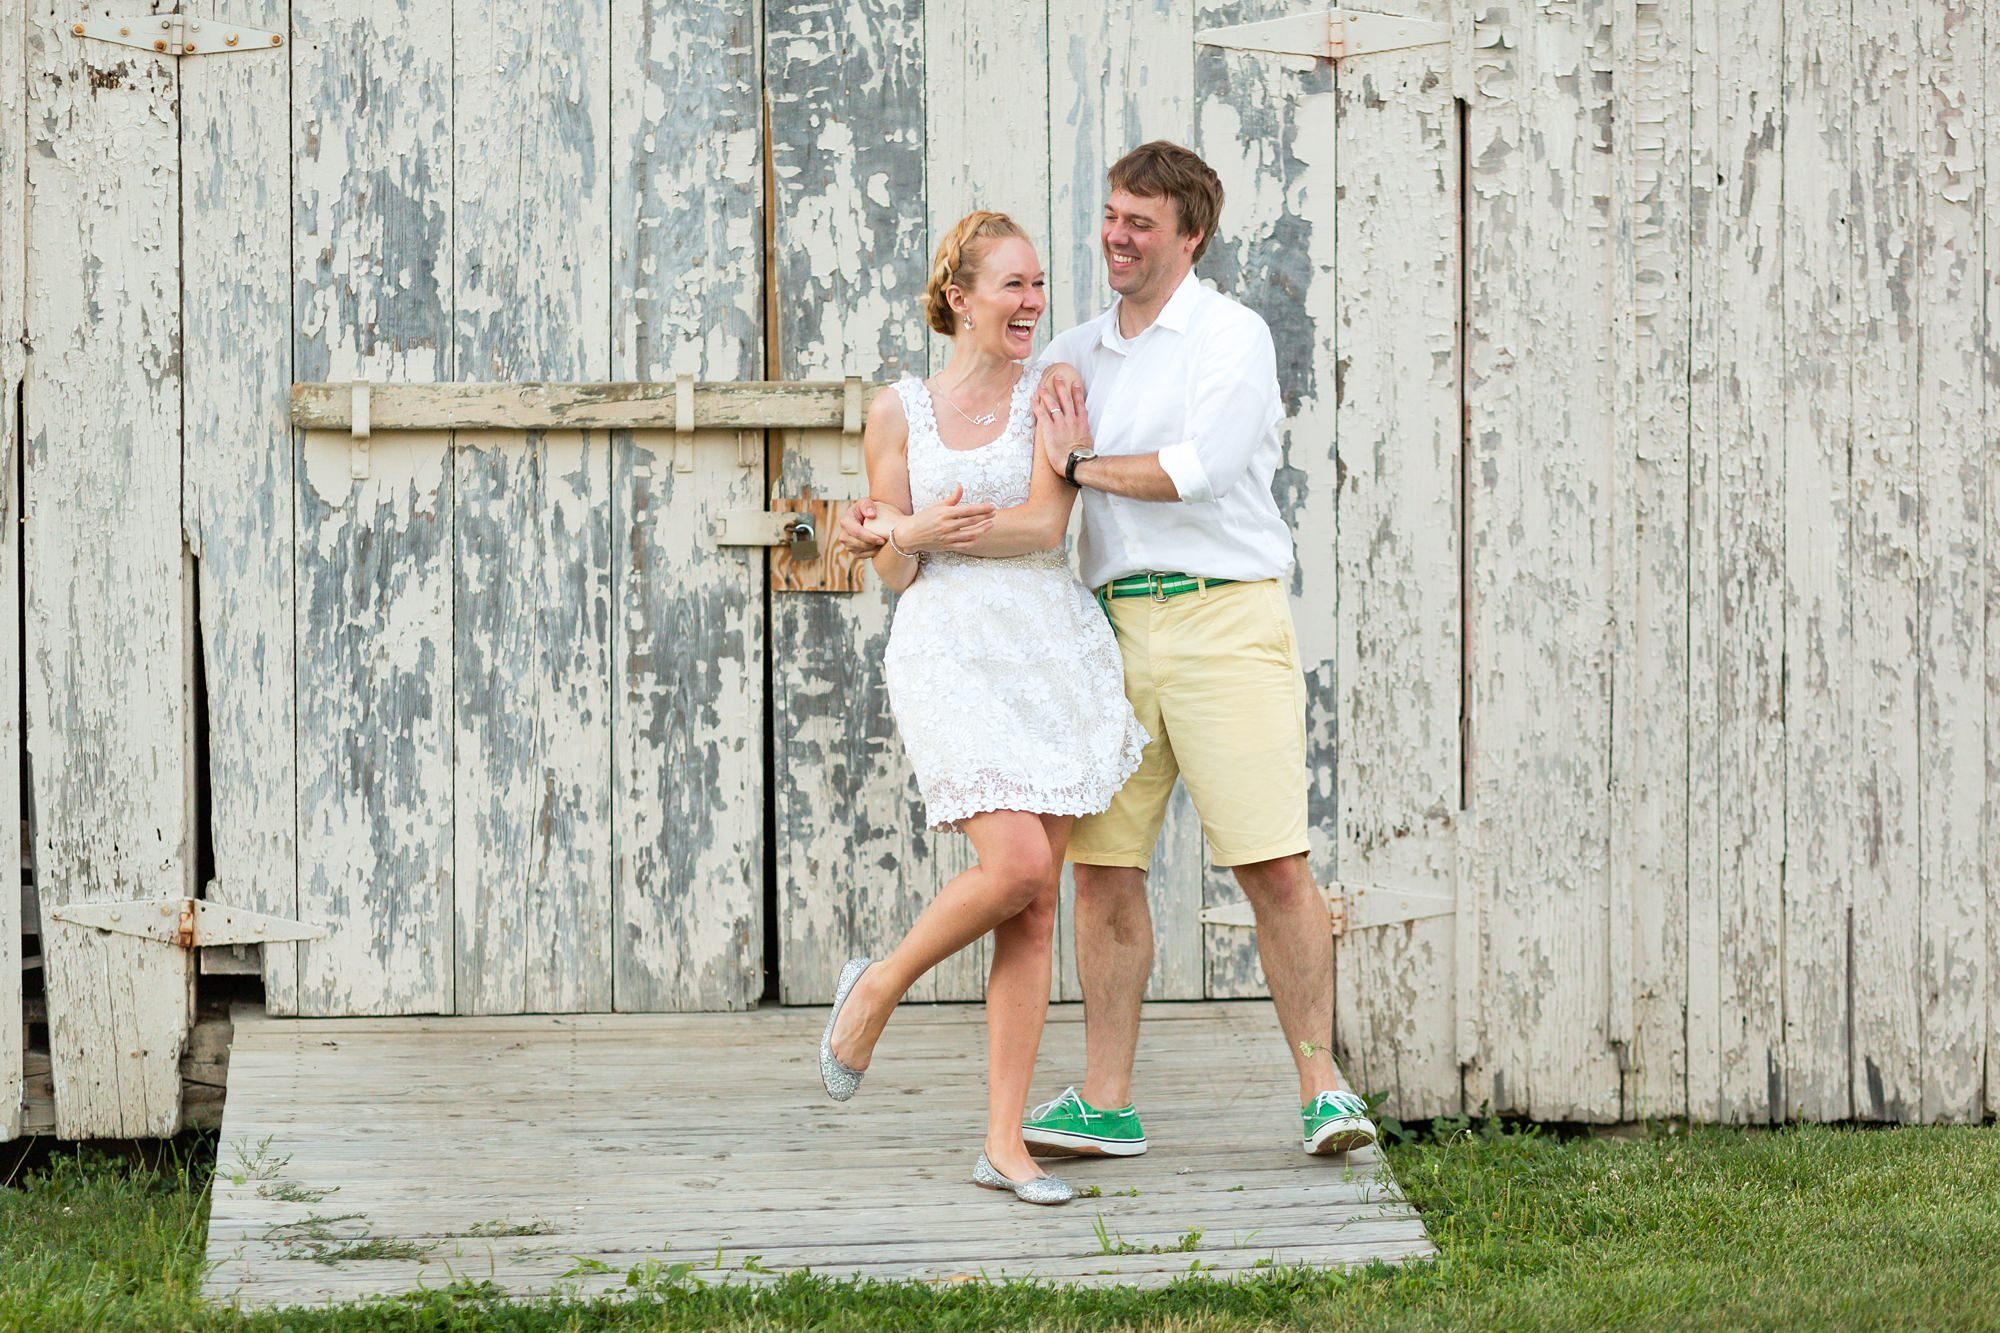 Bride and groom dance in front of shed at Ft. Wayne Indiana Wedding